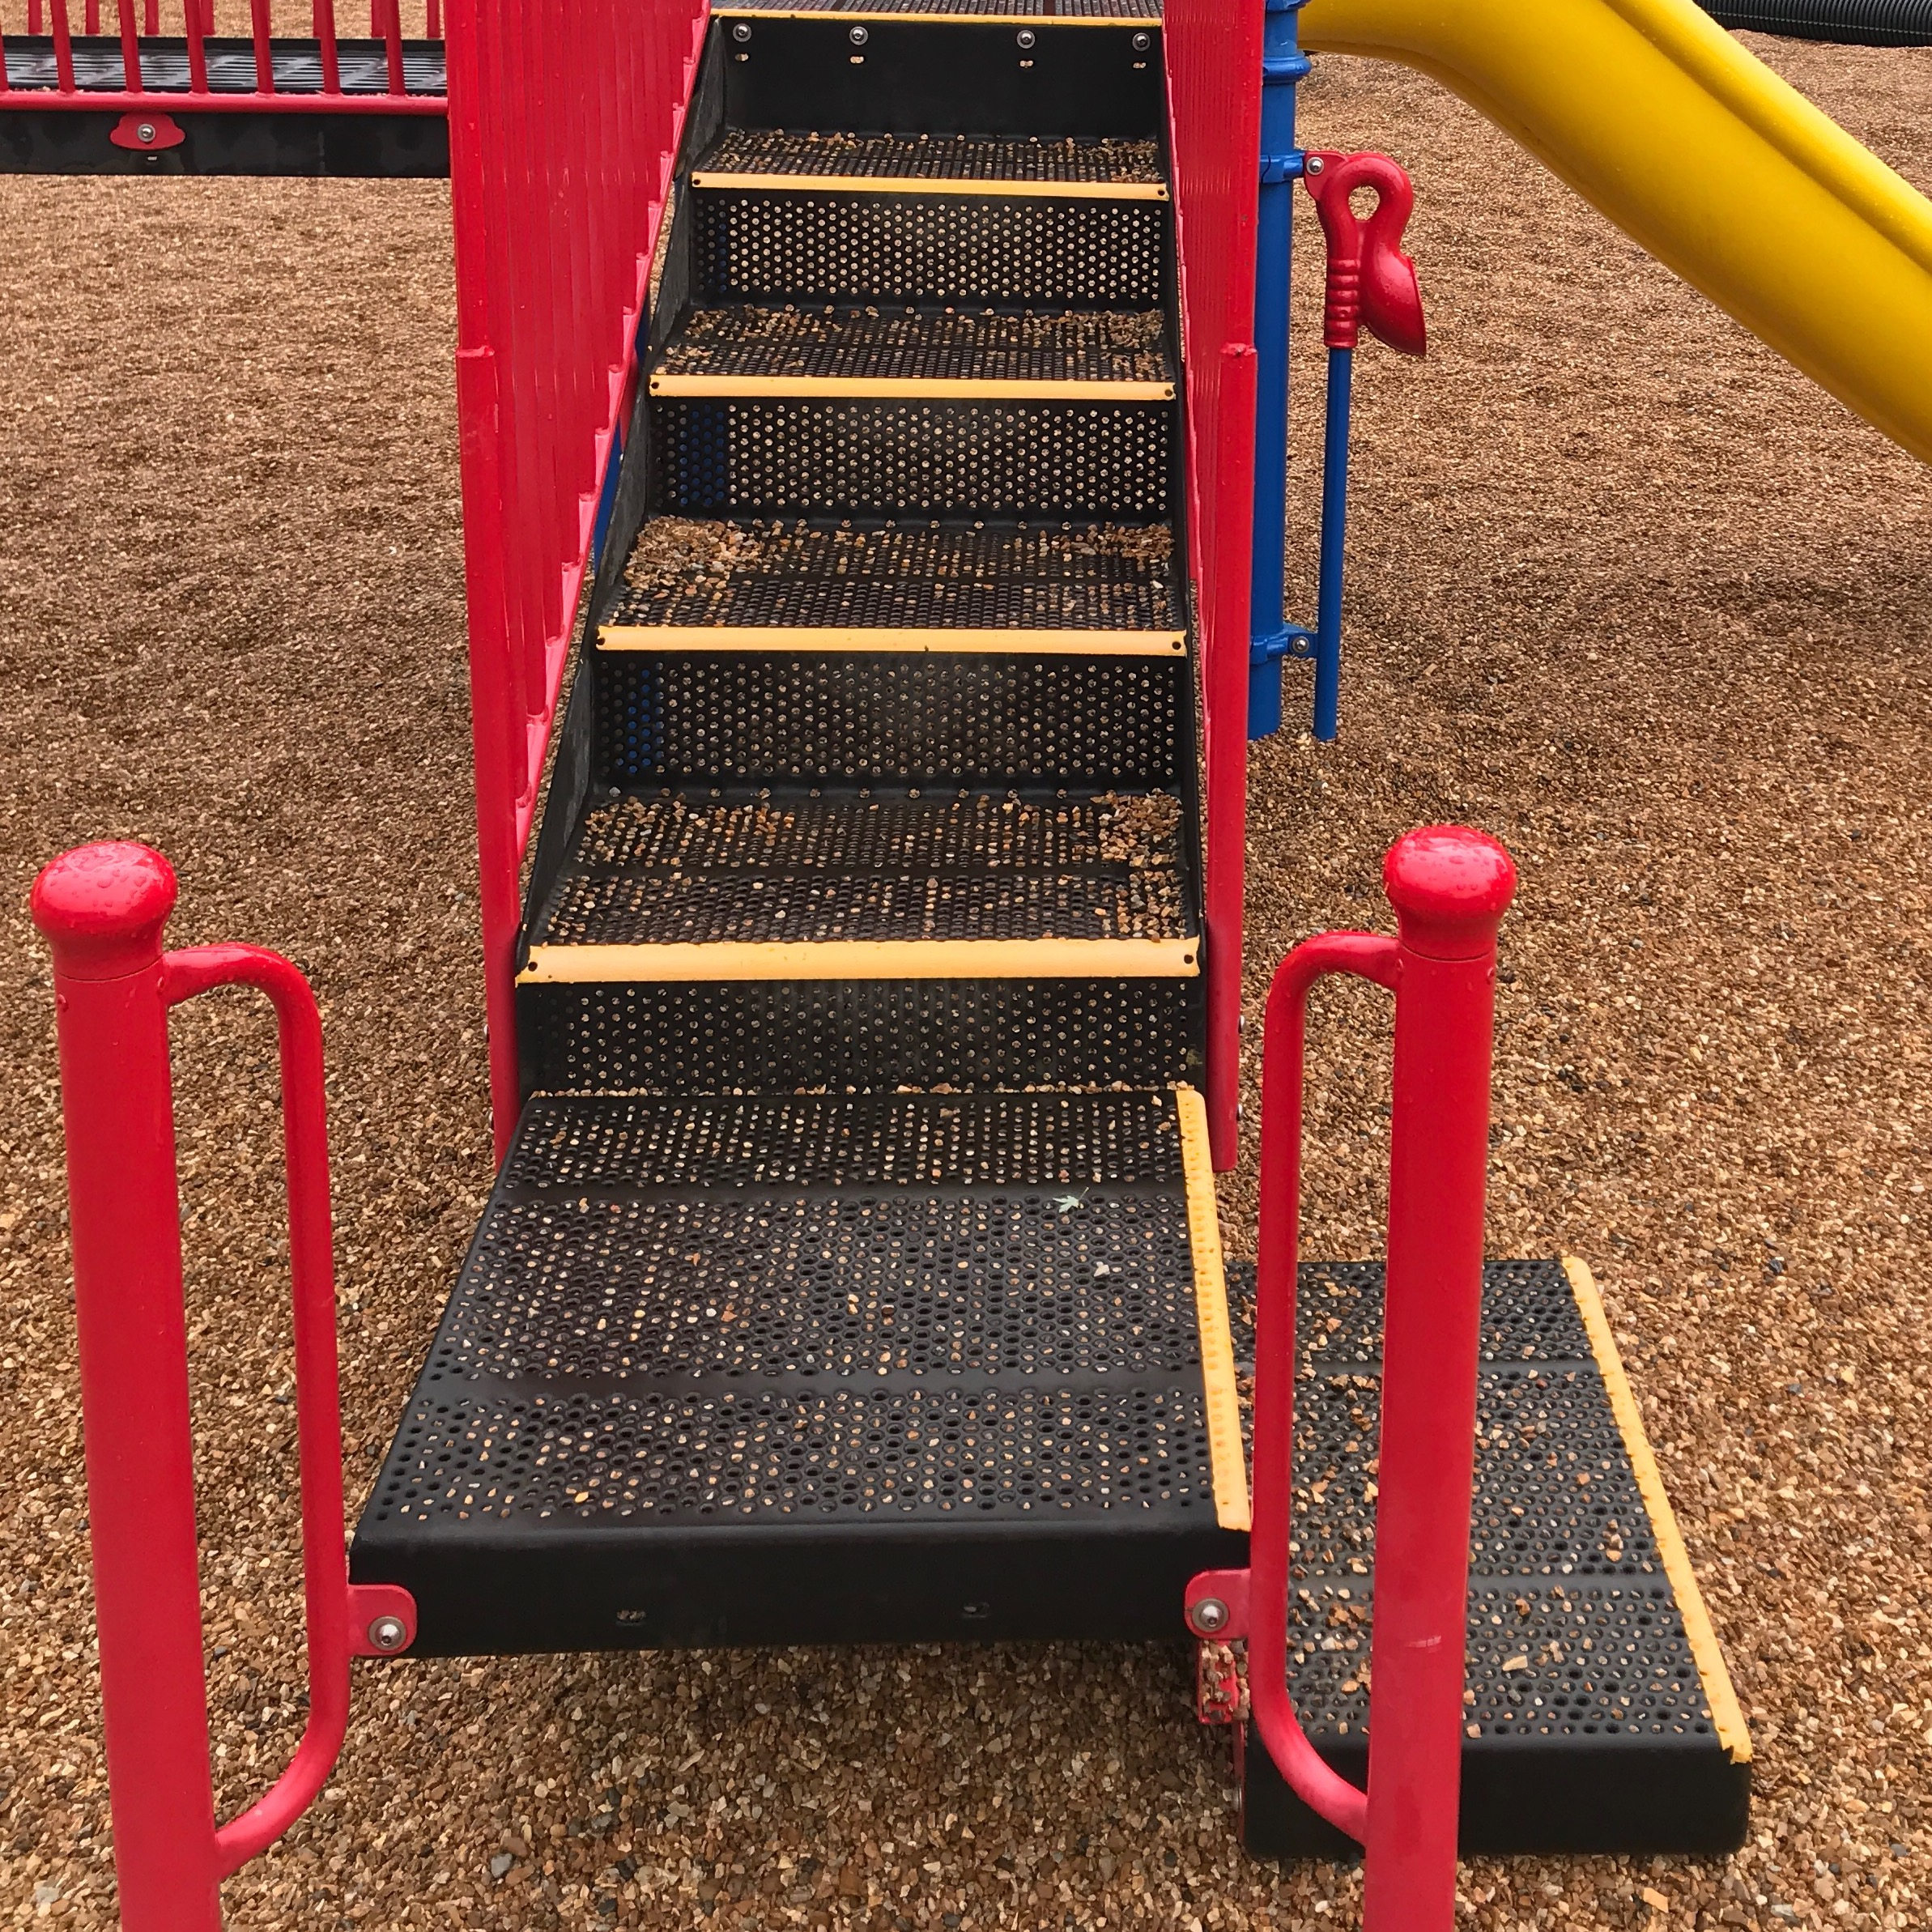 Playground jungle gym with stair edges painted in yellow. The railings and bars in bold red or blue.